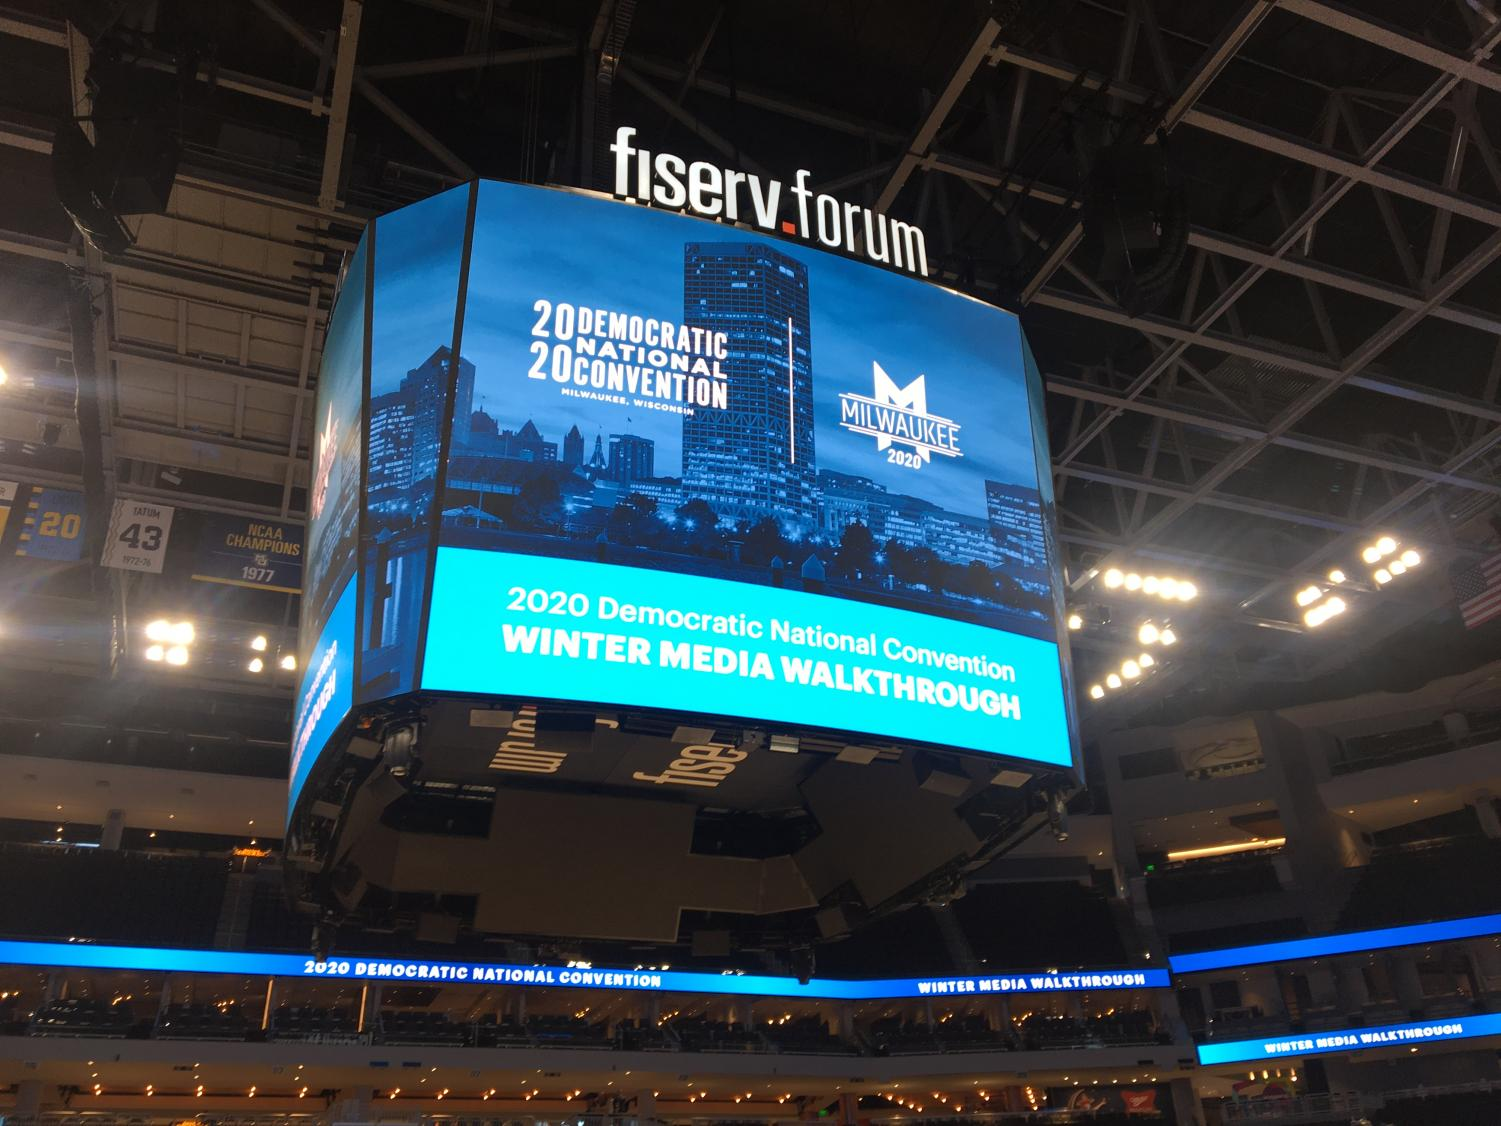 The sign above the court in Fiserv Forum welcomed media members to a Democratic National Convention media walkthrough Jan. 7.